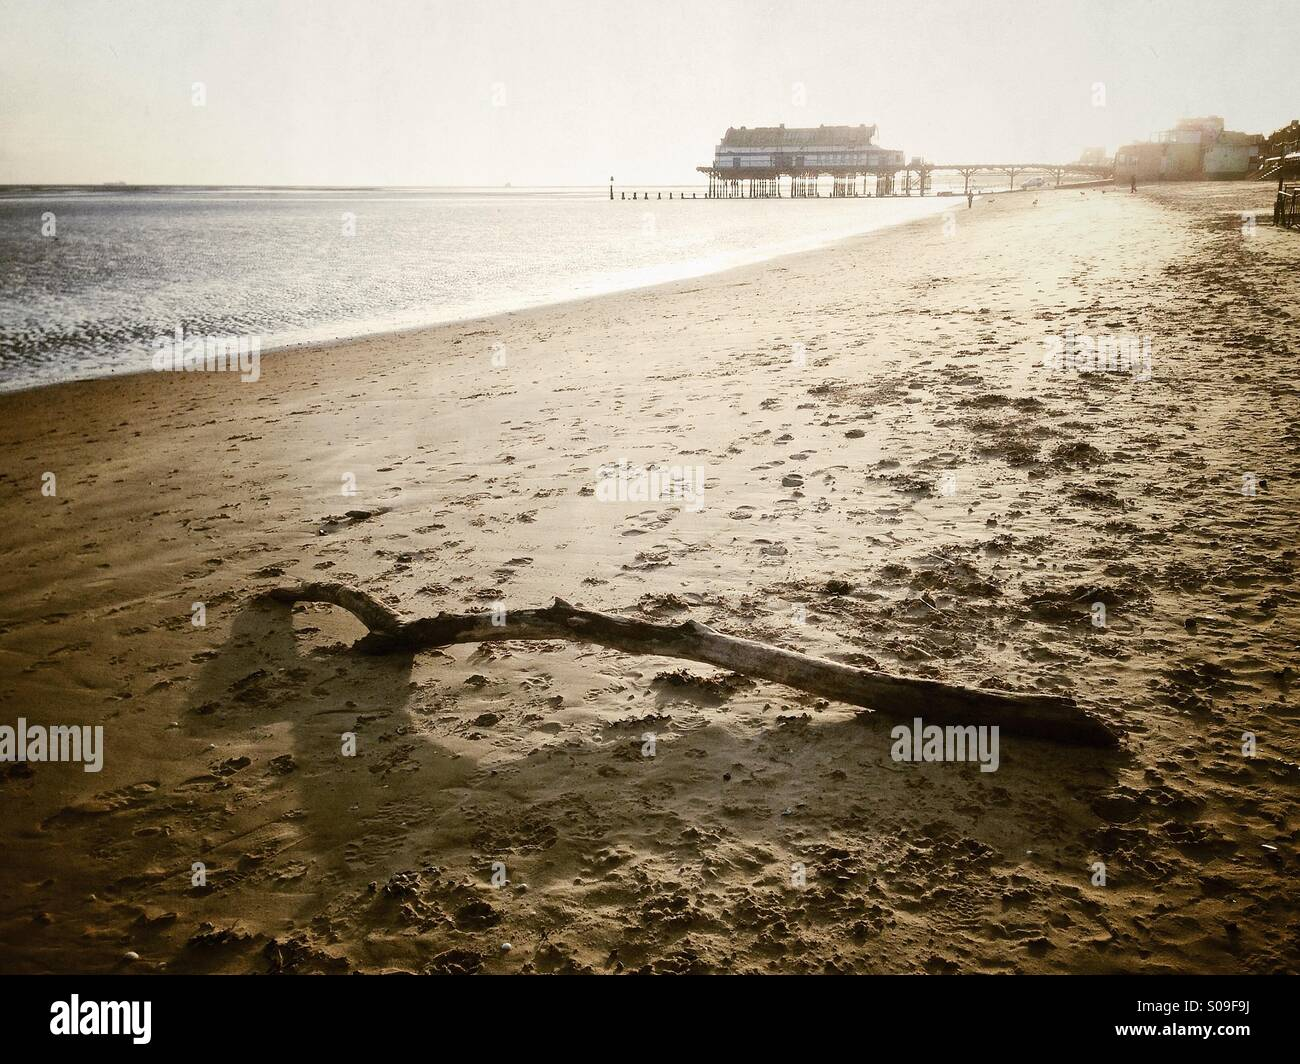 Driftwood washed up on a sparsely populated sandy beach at the seaside Cleethorpes the Pier landmark in the background. - Stock Image